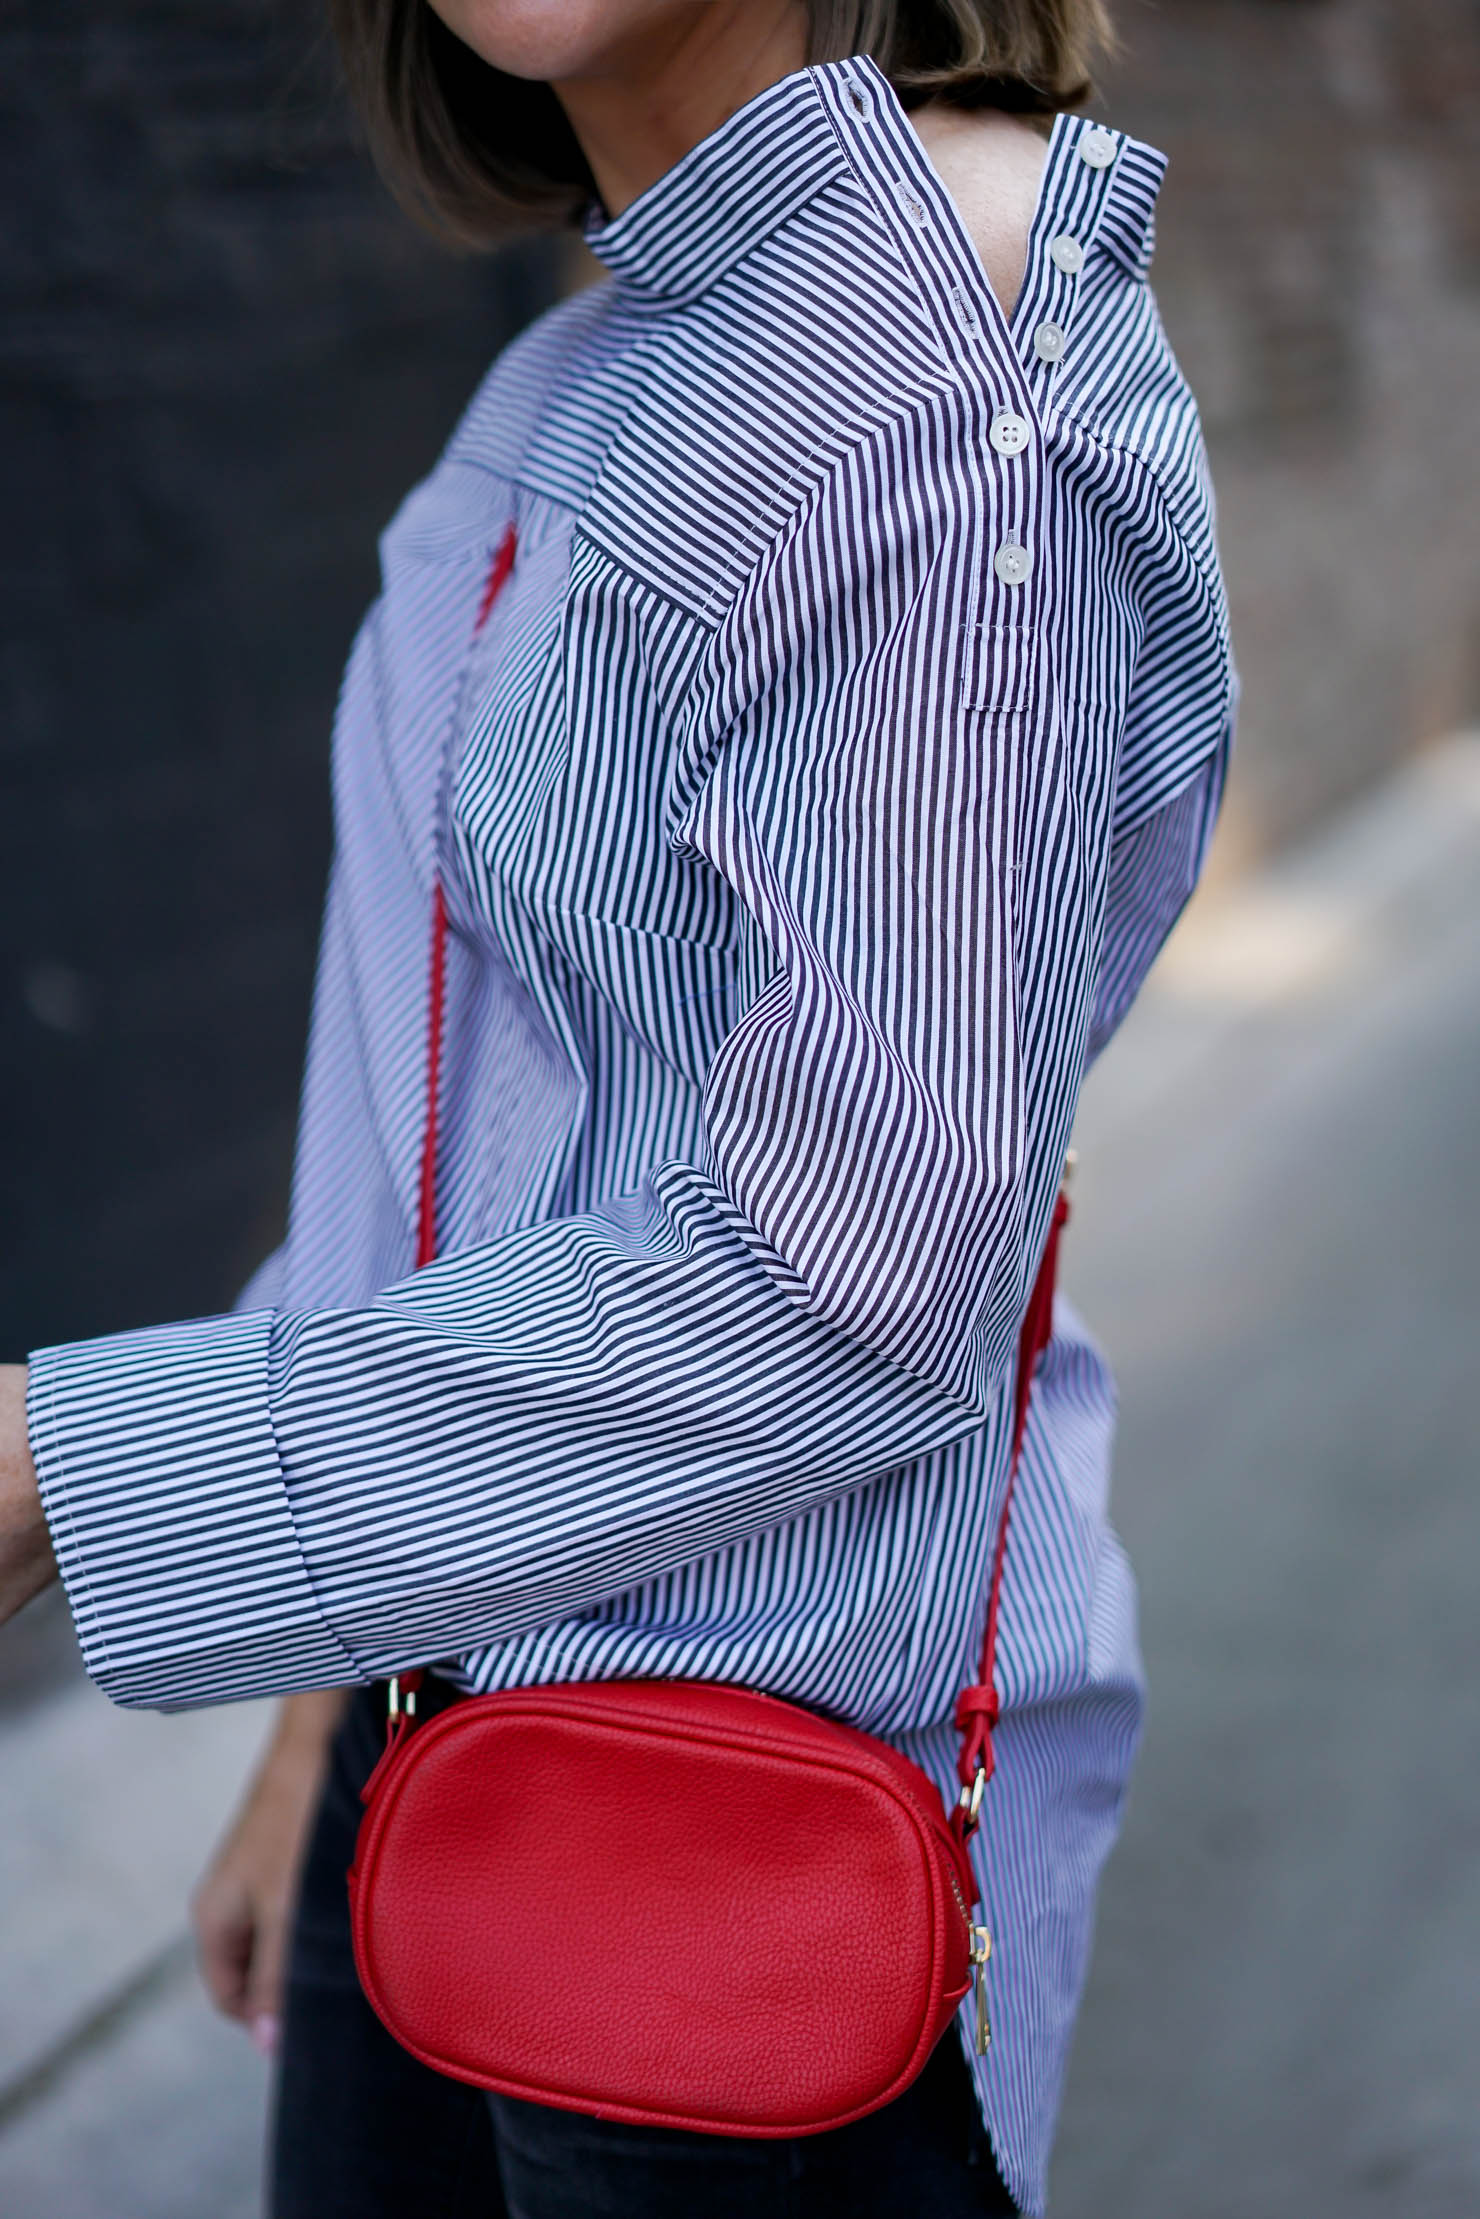 How to Look Pulled Together and Still Be Comfortable, j crew funnel neck striped shirt with buttons, office to evening, the update on a classic womens dress shirt, how to add a pop of red